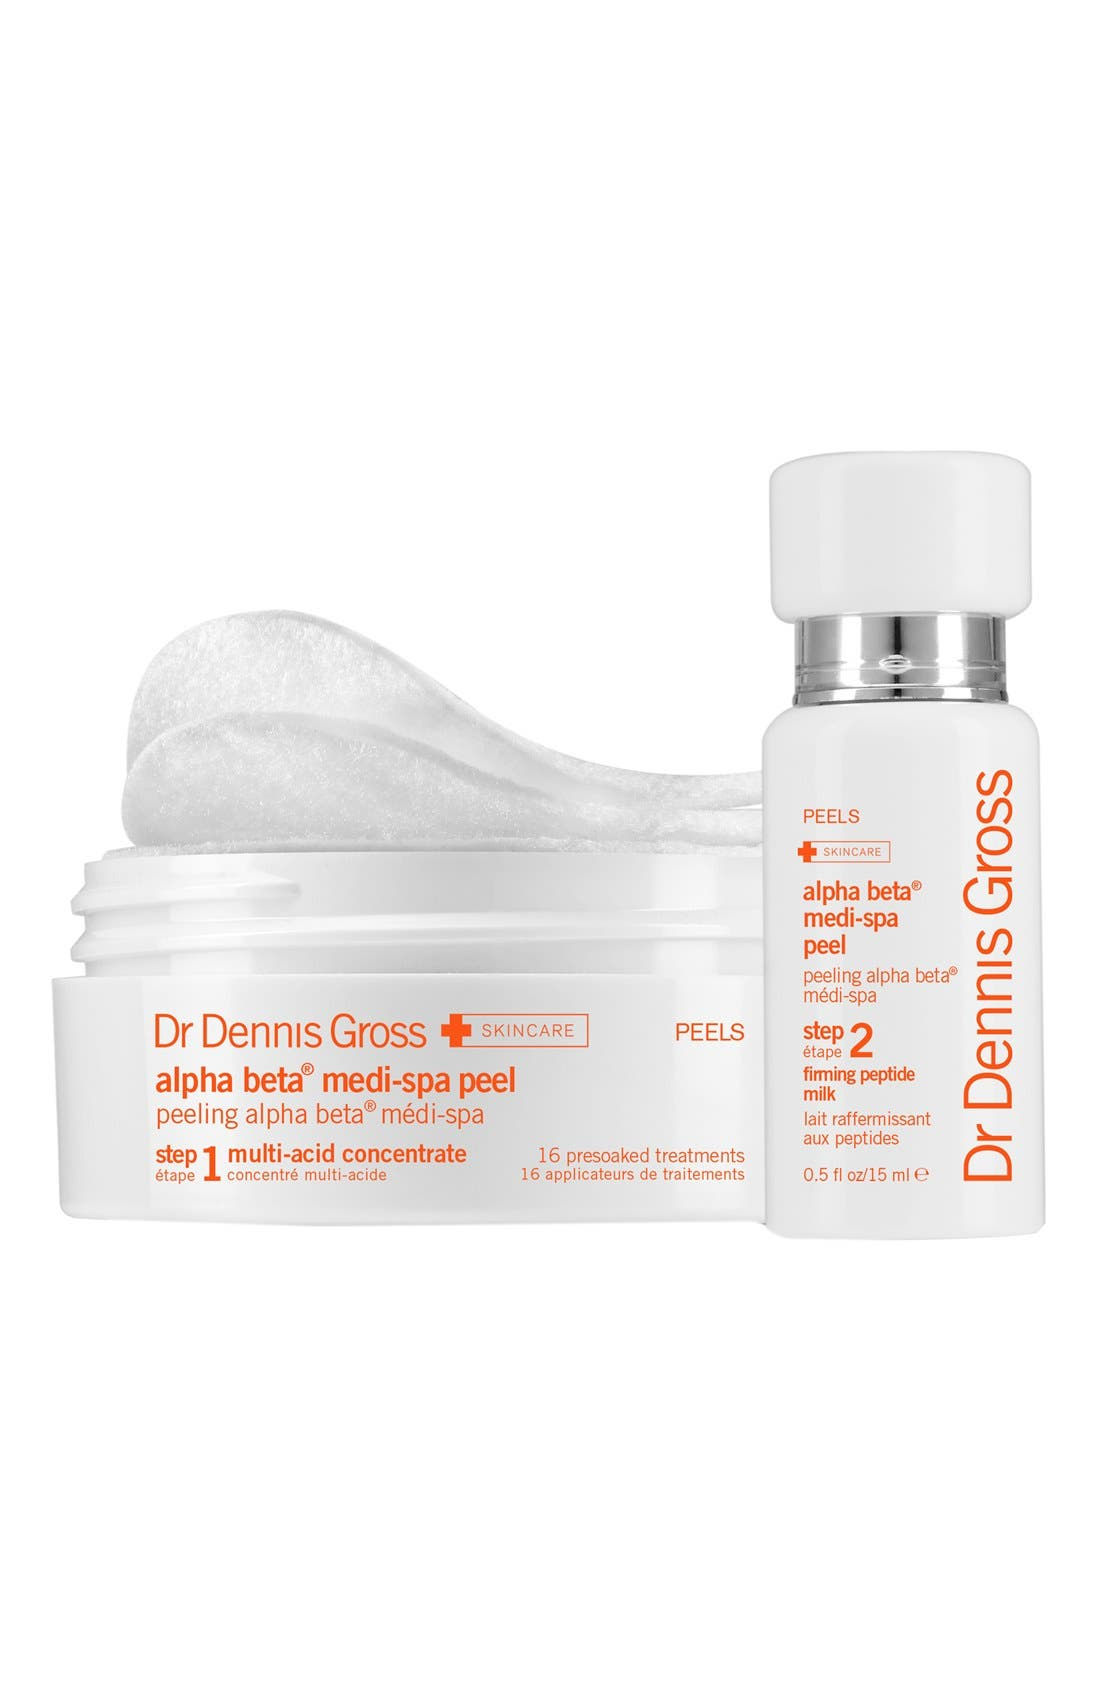 Dr. Dennis Gross Skincare Alpha Beta® Medi-Spa Peel